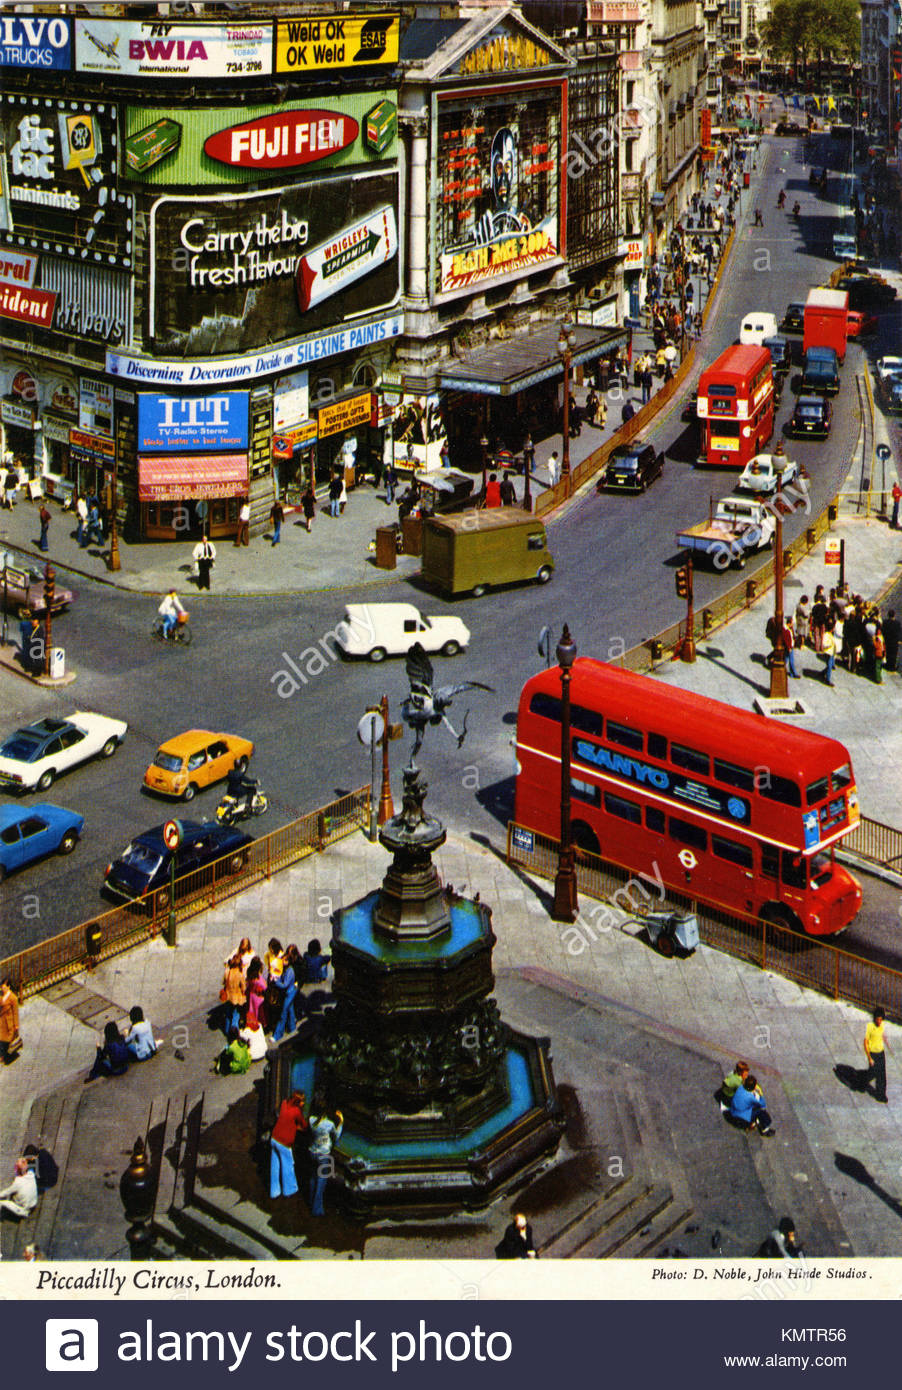 A 1960's postcard of Picadilly Circus, London - Stock Image